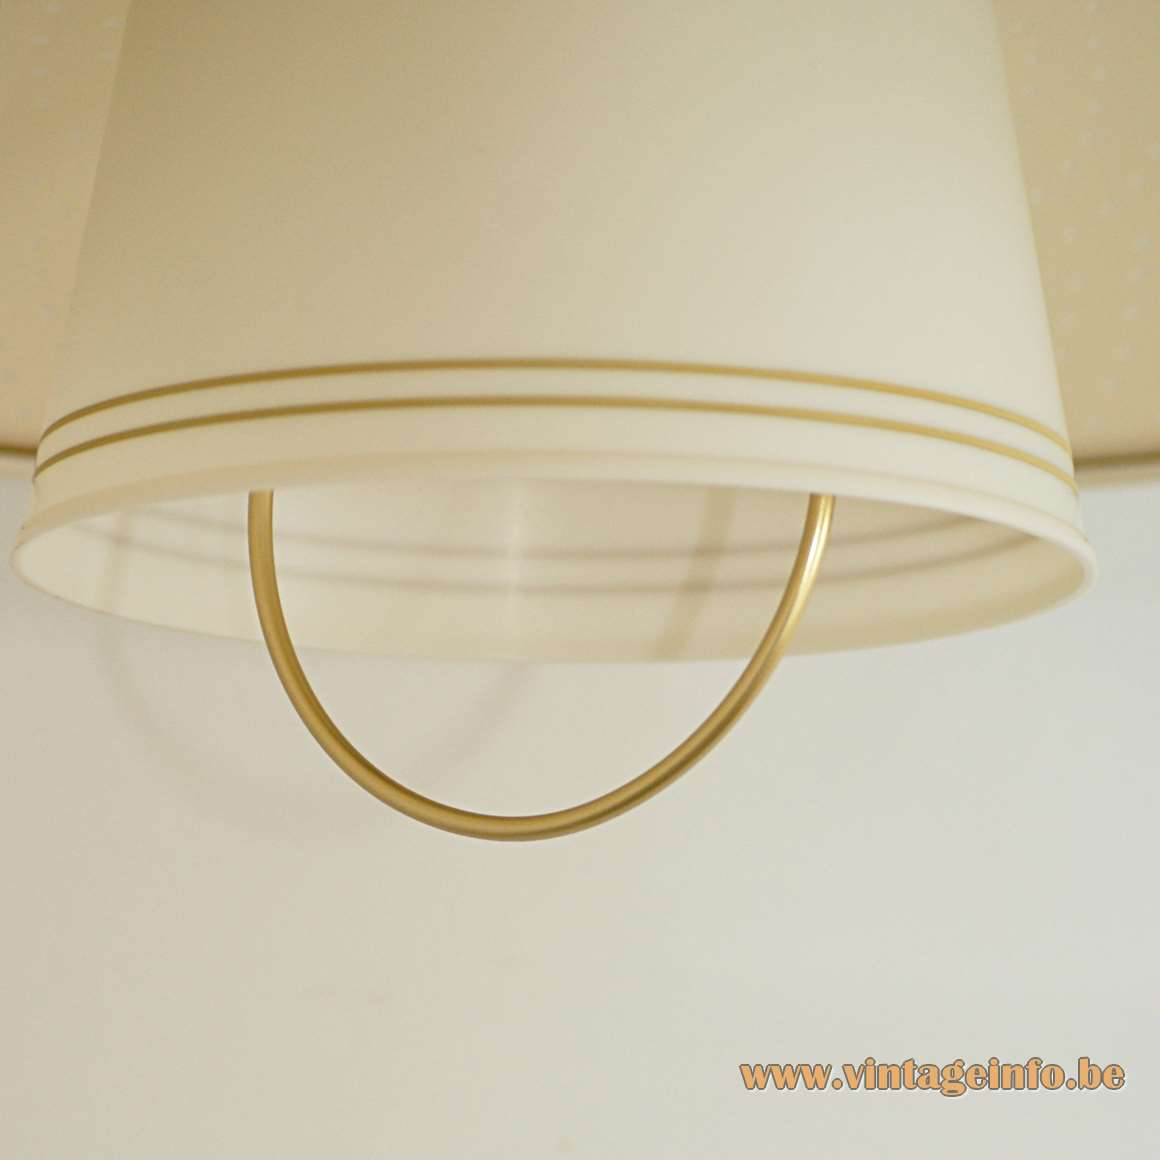 ERCO pendant light